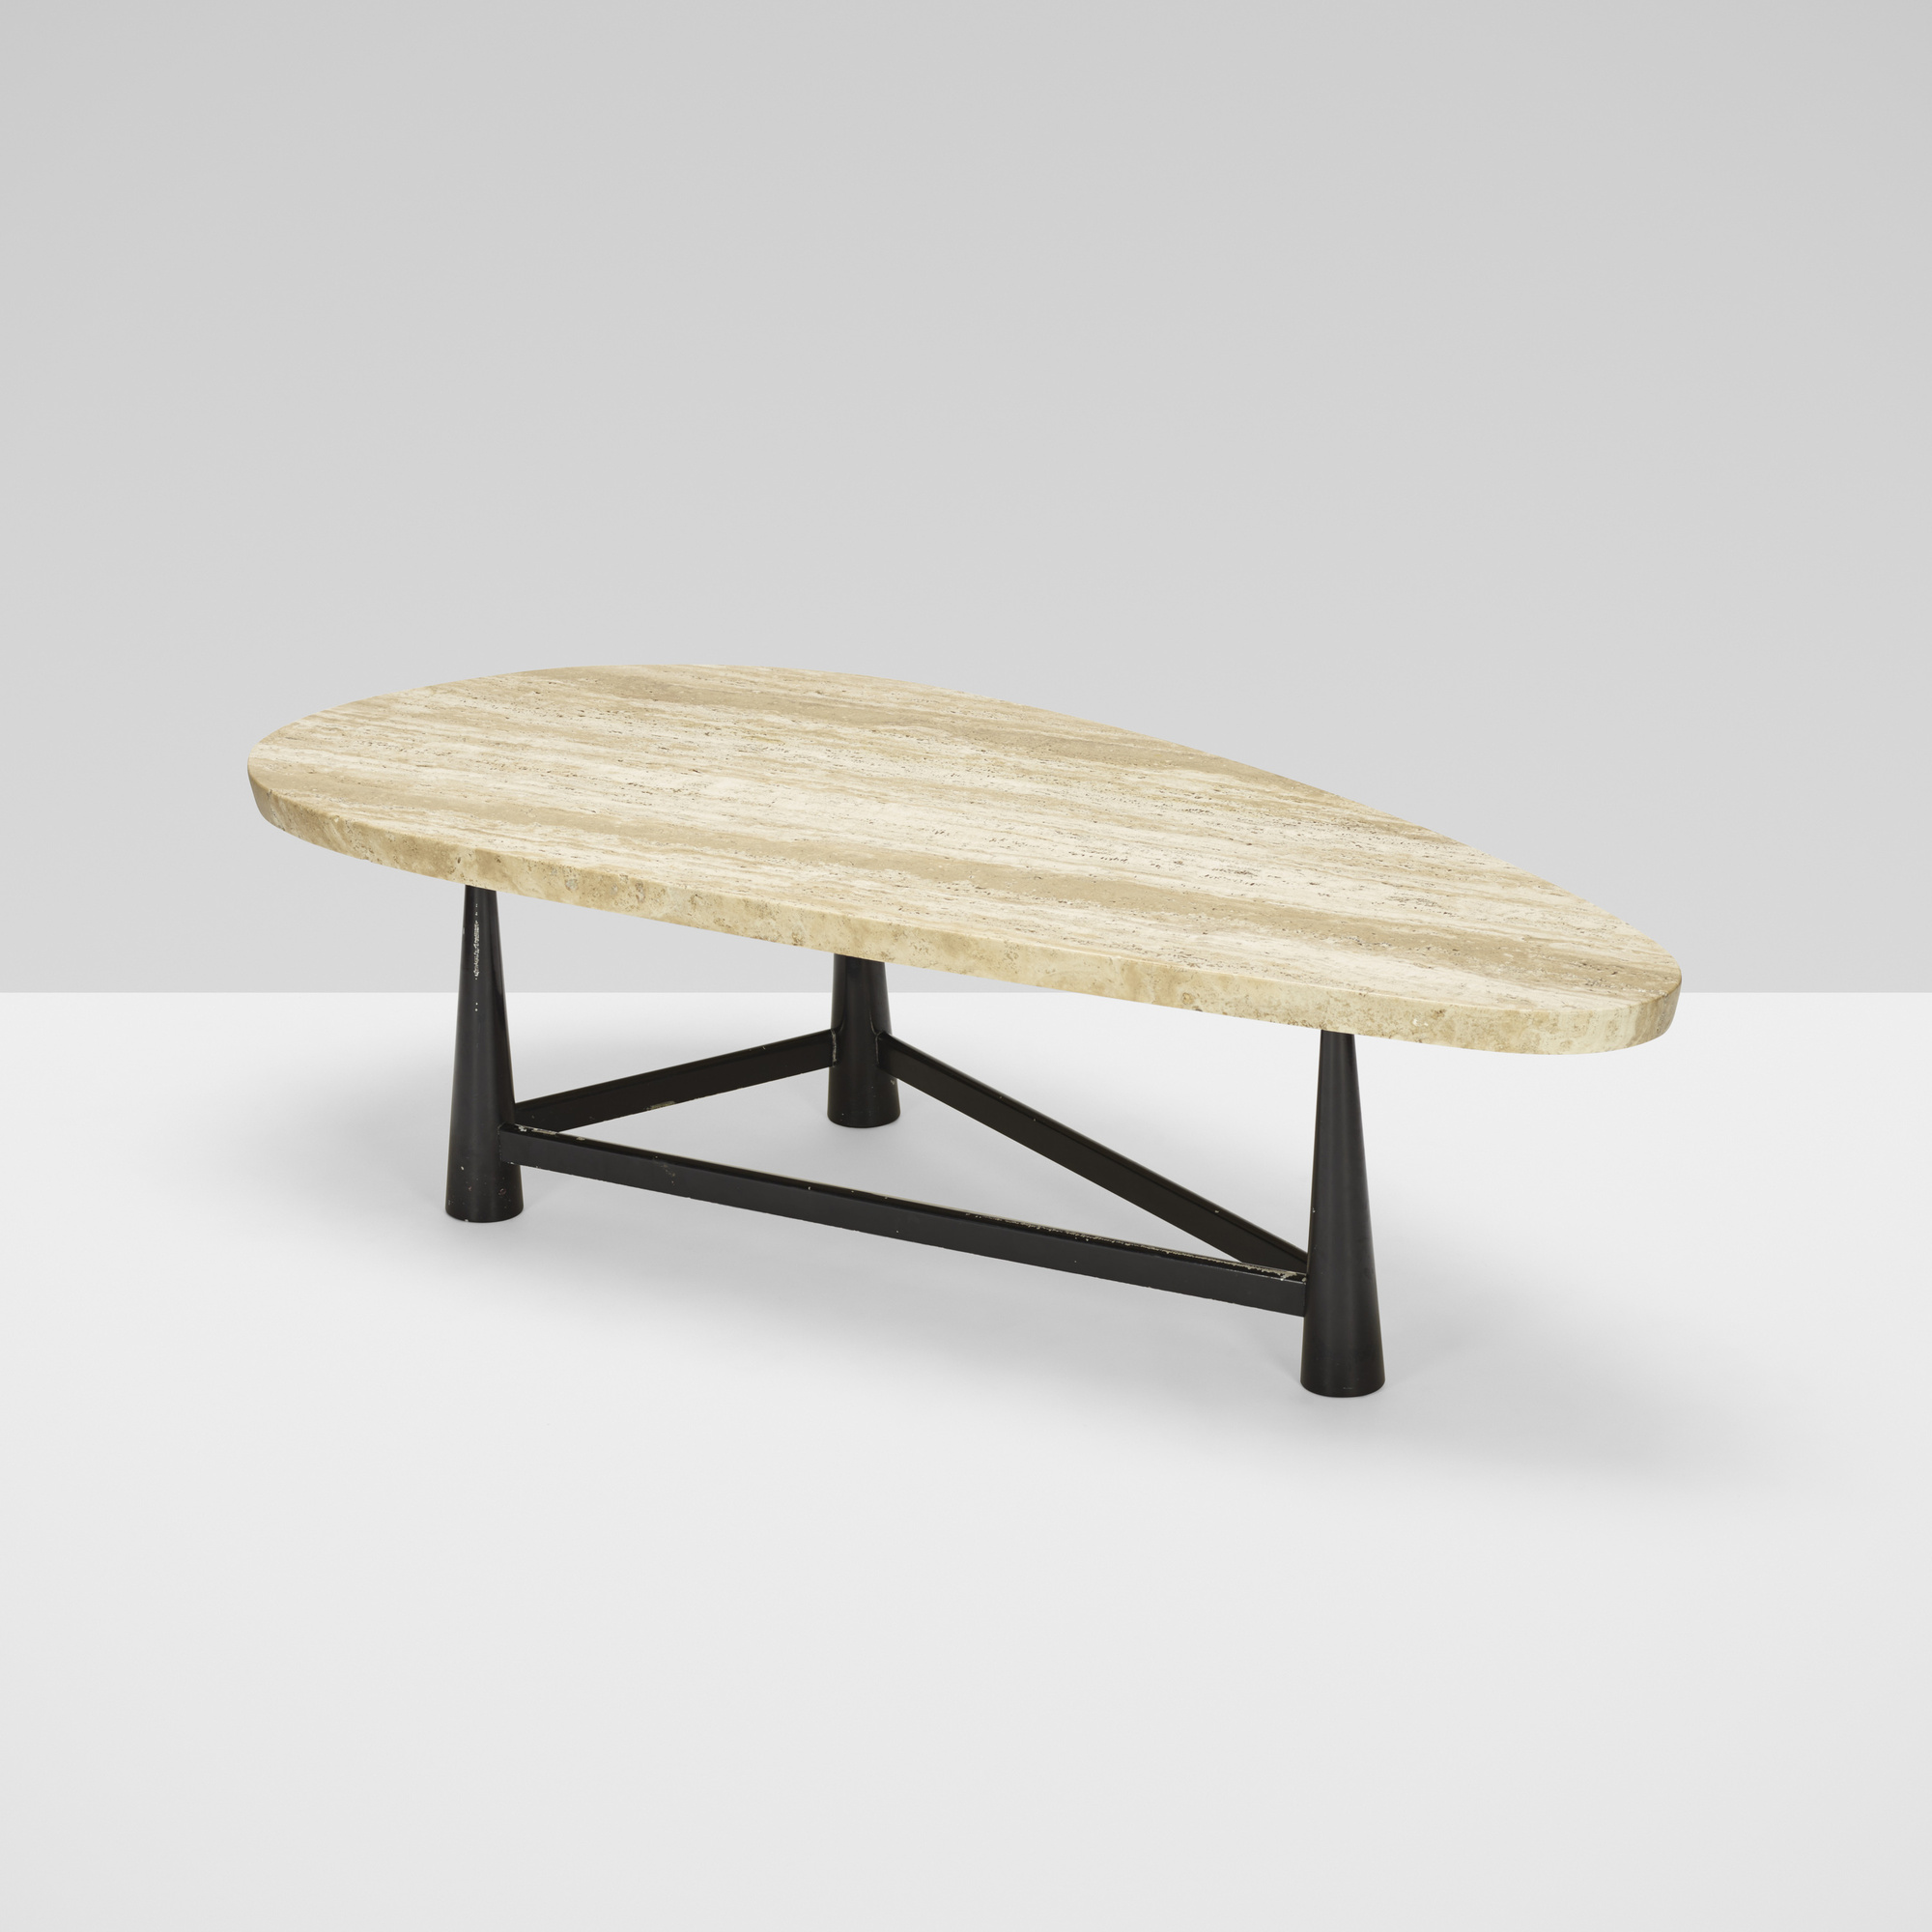 352: Edward Wormley / coffee table, model 521 (1 of 2)